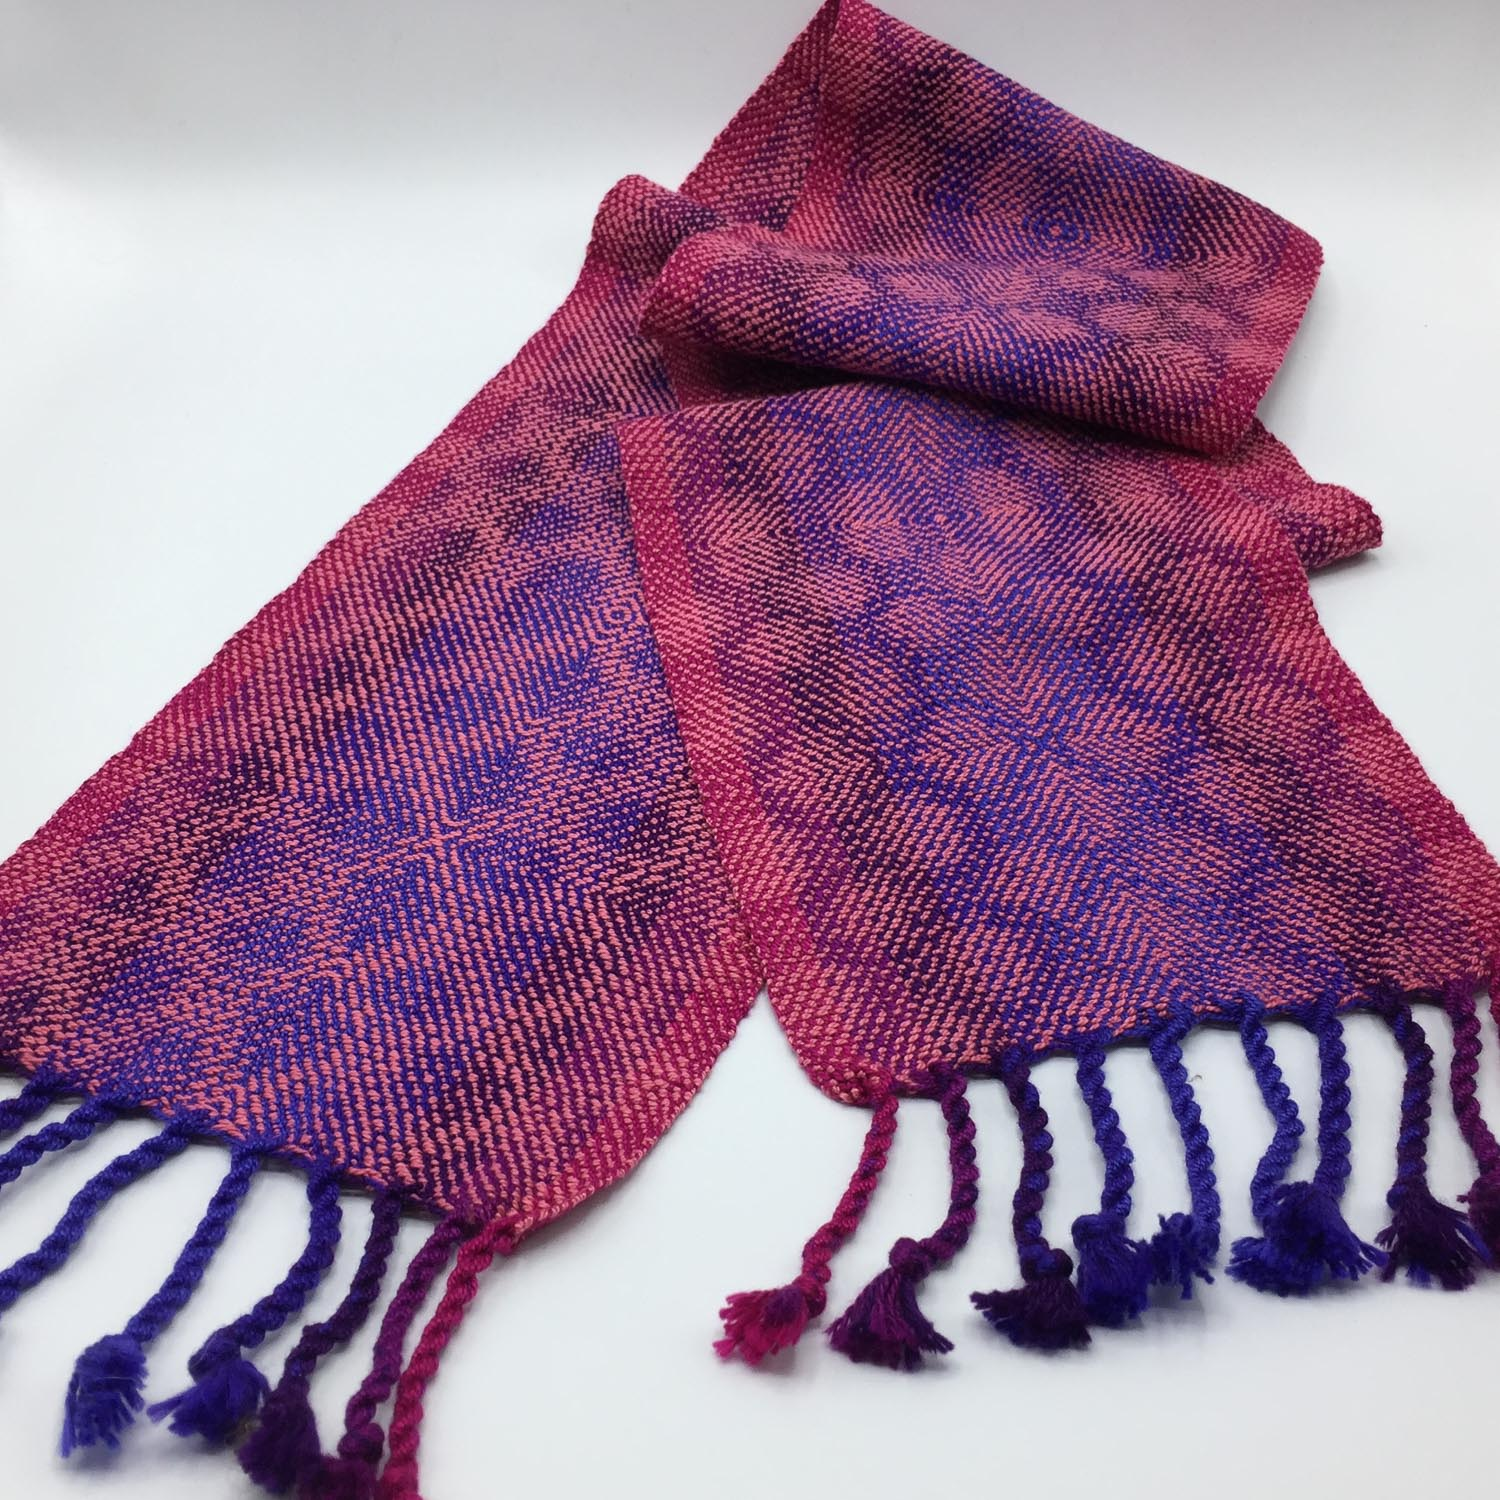 Handwoven cotton scarf.